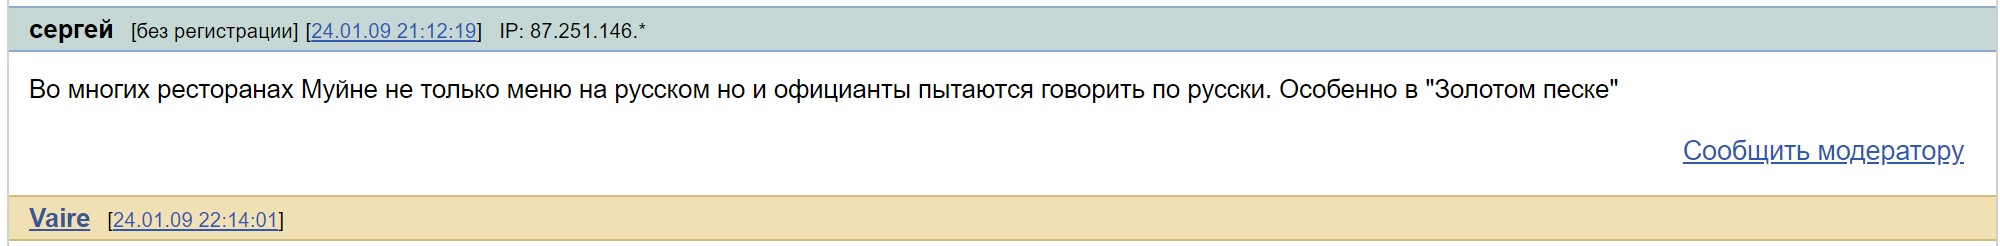 """January 24, 2008 Post by User 'Sergey"""" Who Logged in With Proxy: 87.251.146. Source: Otzyv.ru."""